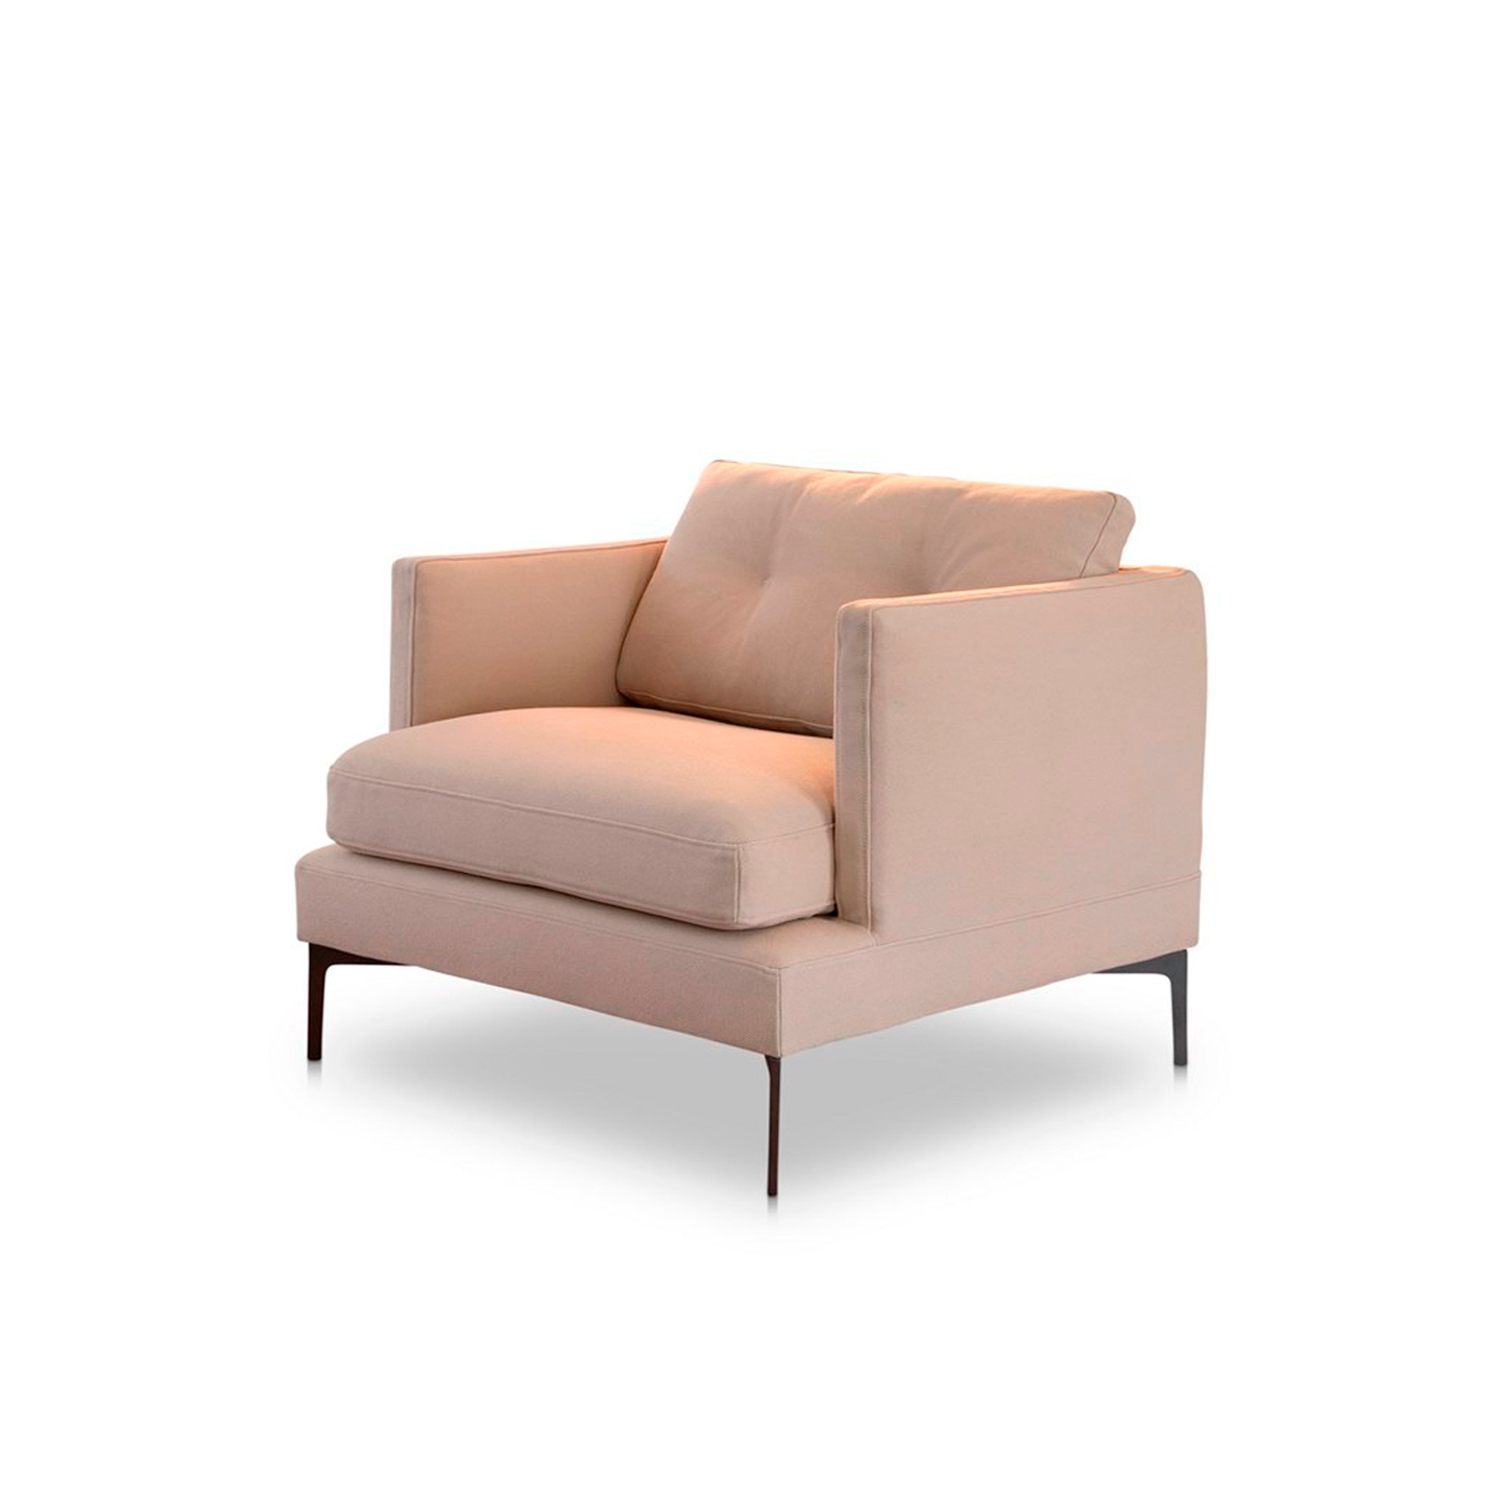 Baby Essentiel Lounge Armchair  - The Baby Essentiel armchair offers a contained seating solution that follows the same design as the sofa and exhibits a form without excess and with comfortable ergonomics.‎ An armchair that recalls a certain Italian historical elegance, merging sophisticated elements with a simple outline.‎ The attention to details that distinguishes Saba can be found in the quilted cushions and in the thin painted legs that support the armchair.‎ Also available with a grosgrain cord trim.‎ Fully removable covers.‎